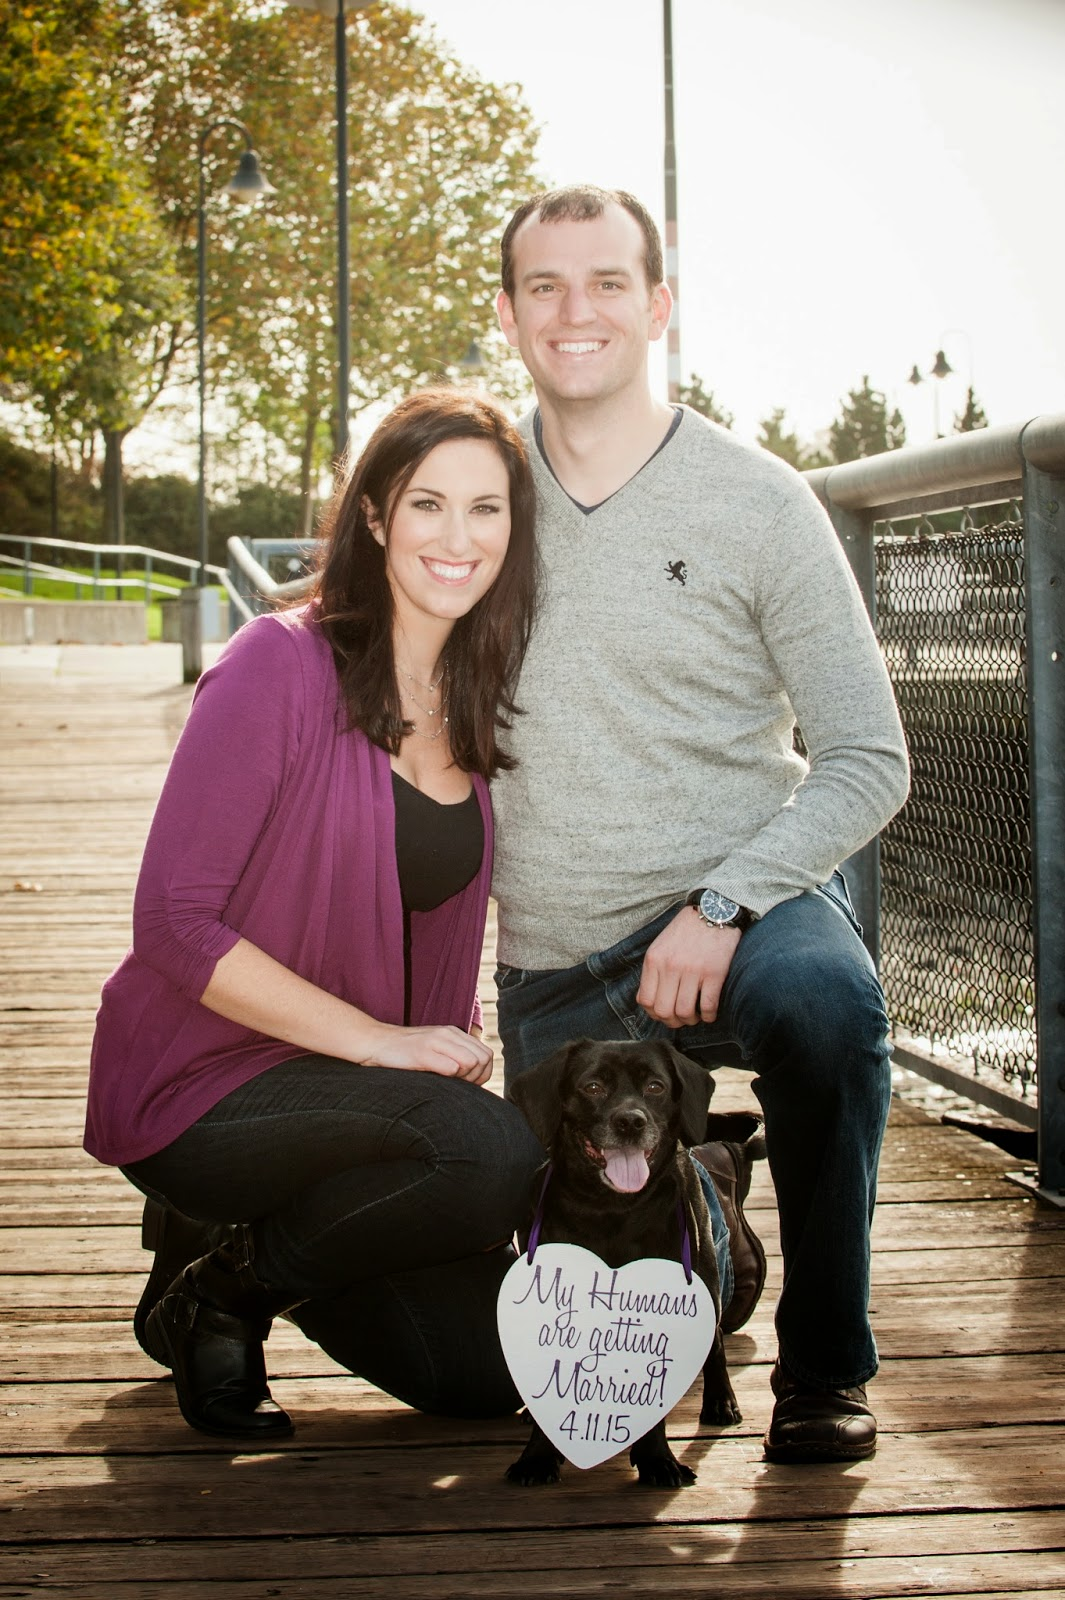 Save the Date announced by Watson, Brian and Erin's dog - Patricia Stimac, Seattle Wedding Officiant